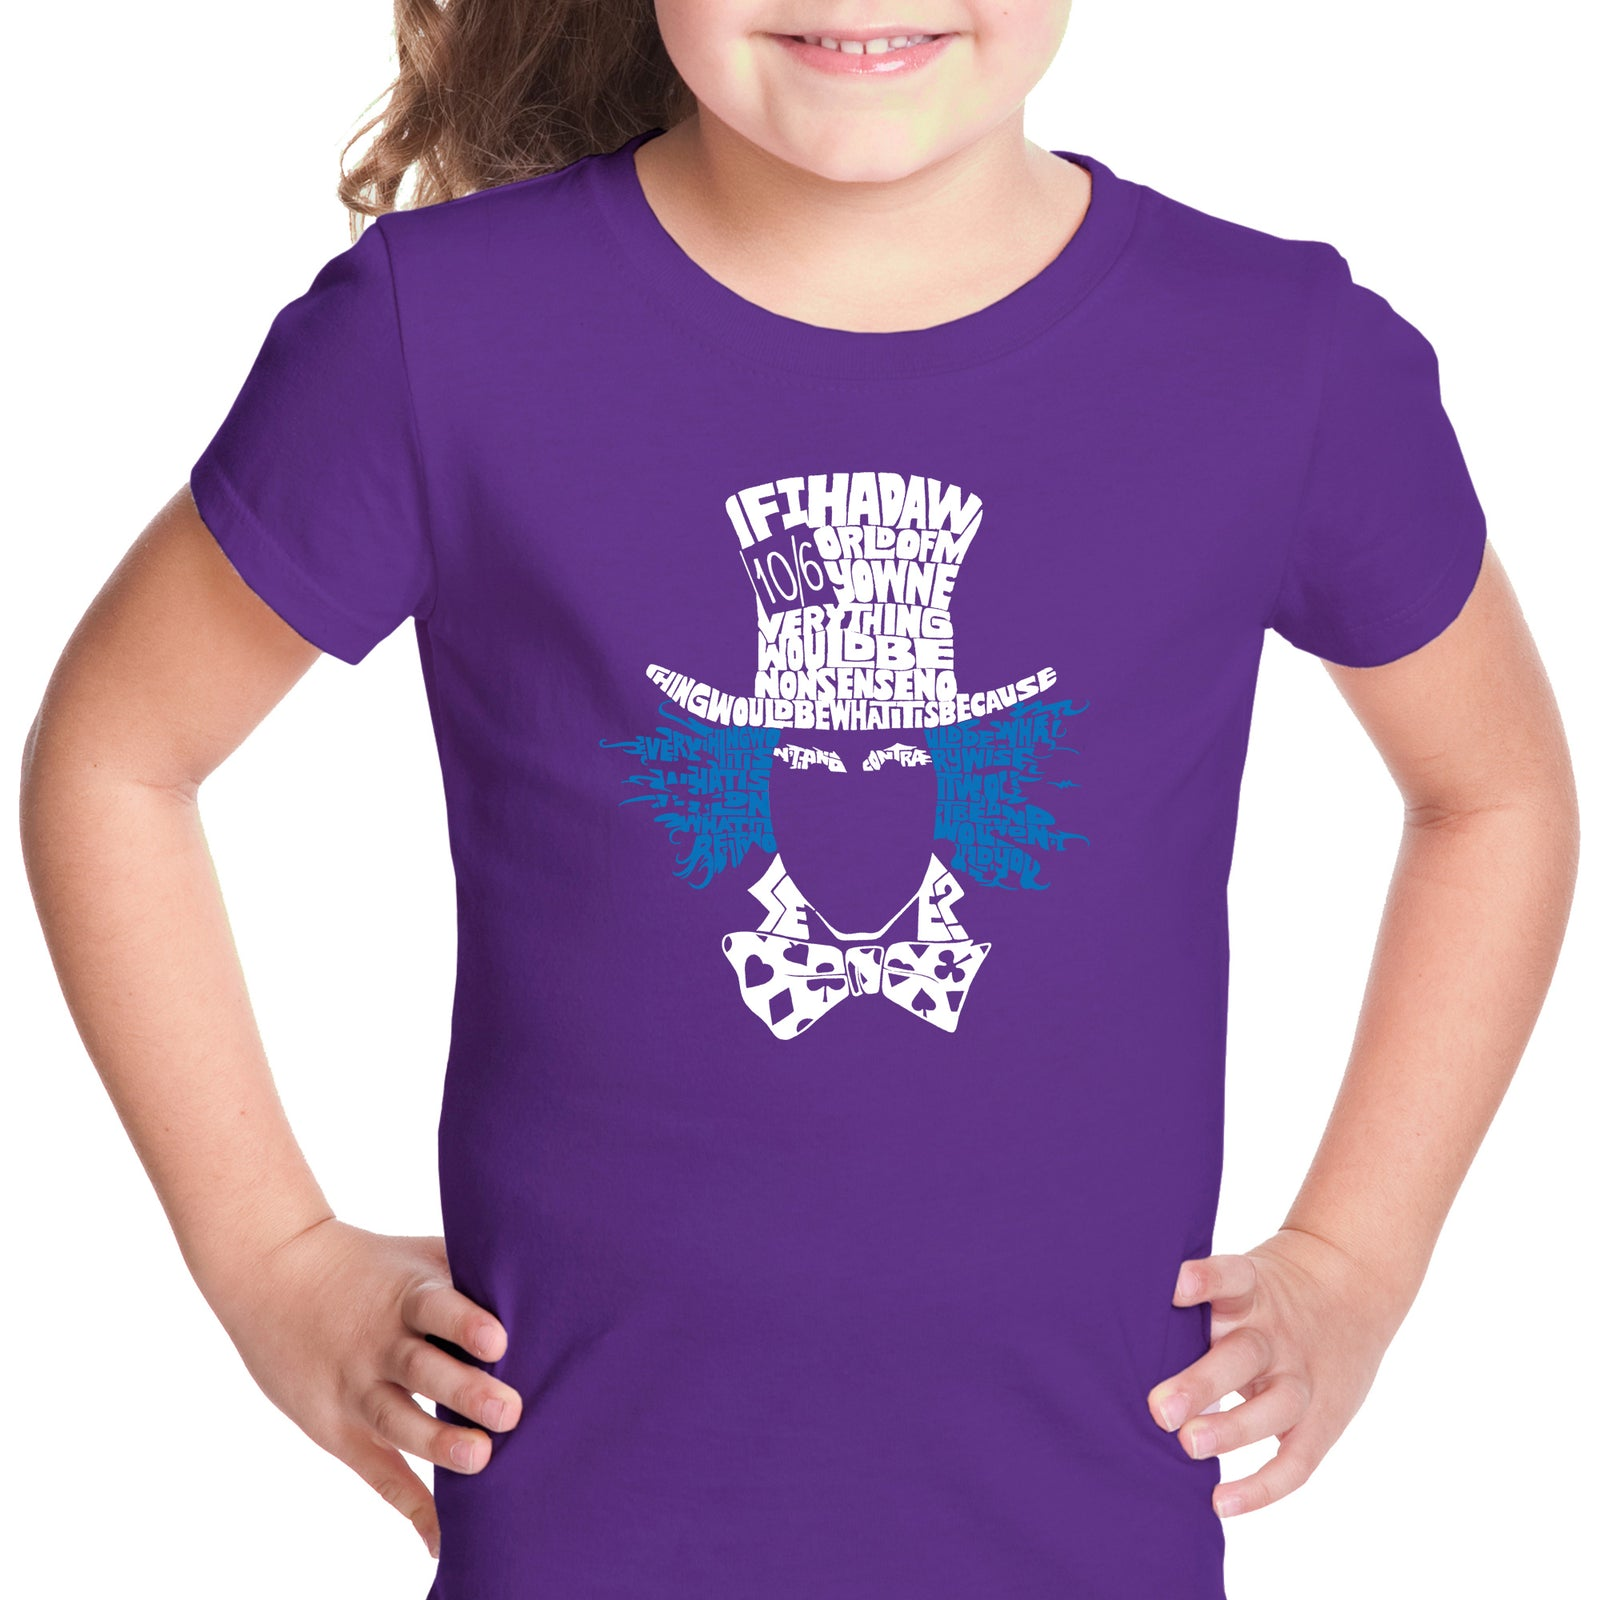 Girl's T-shirt - The Mad Hatter